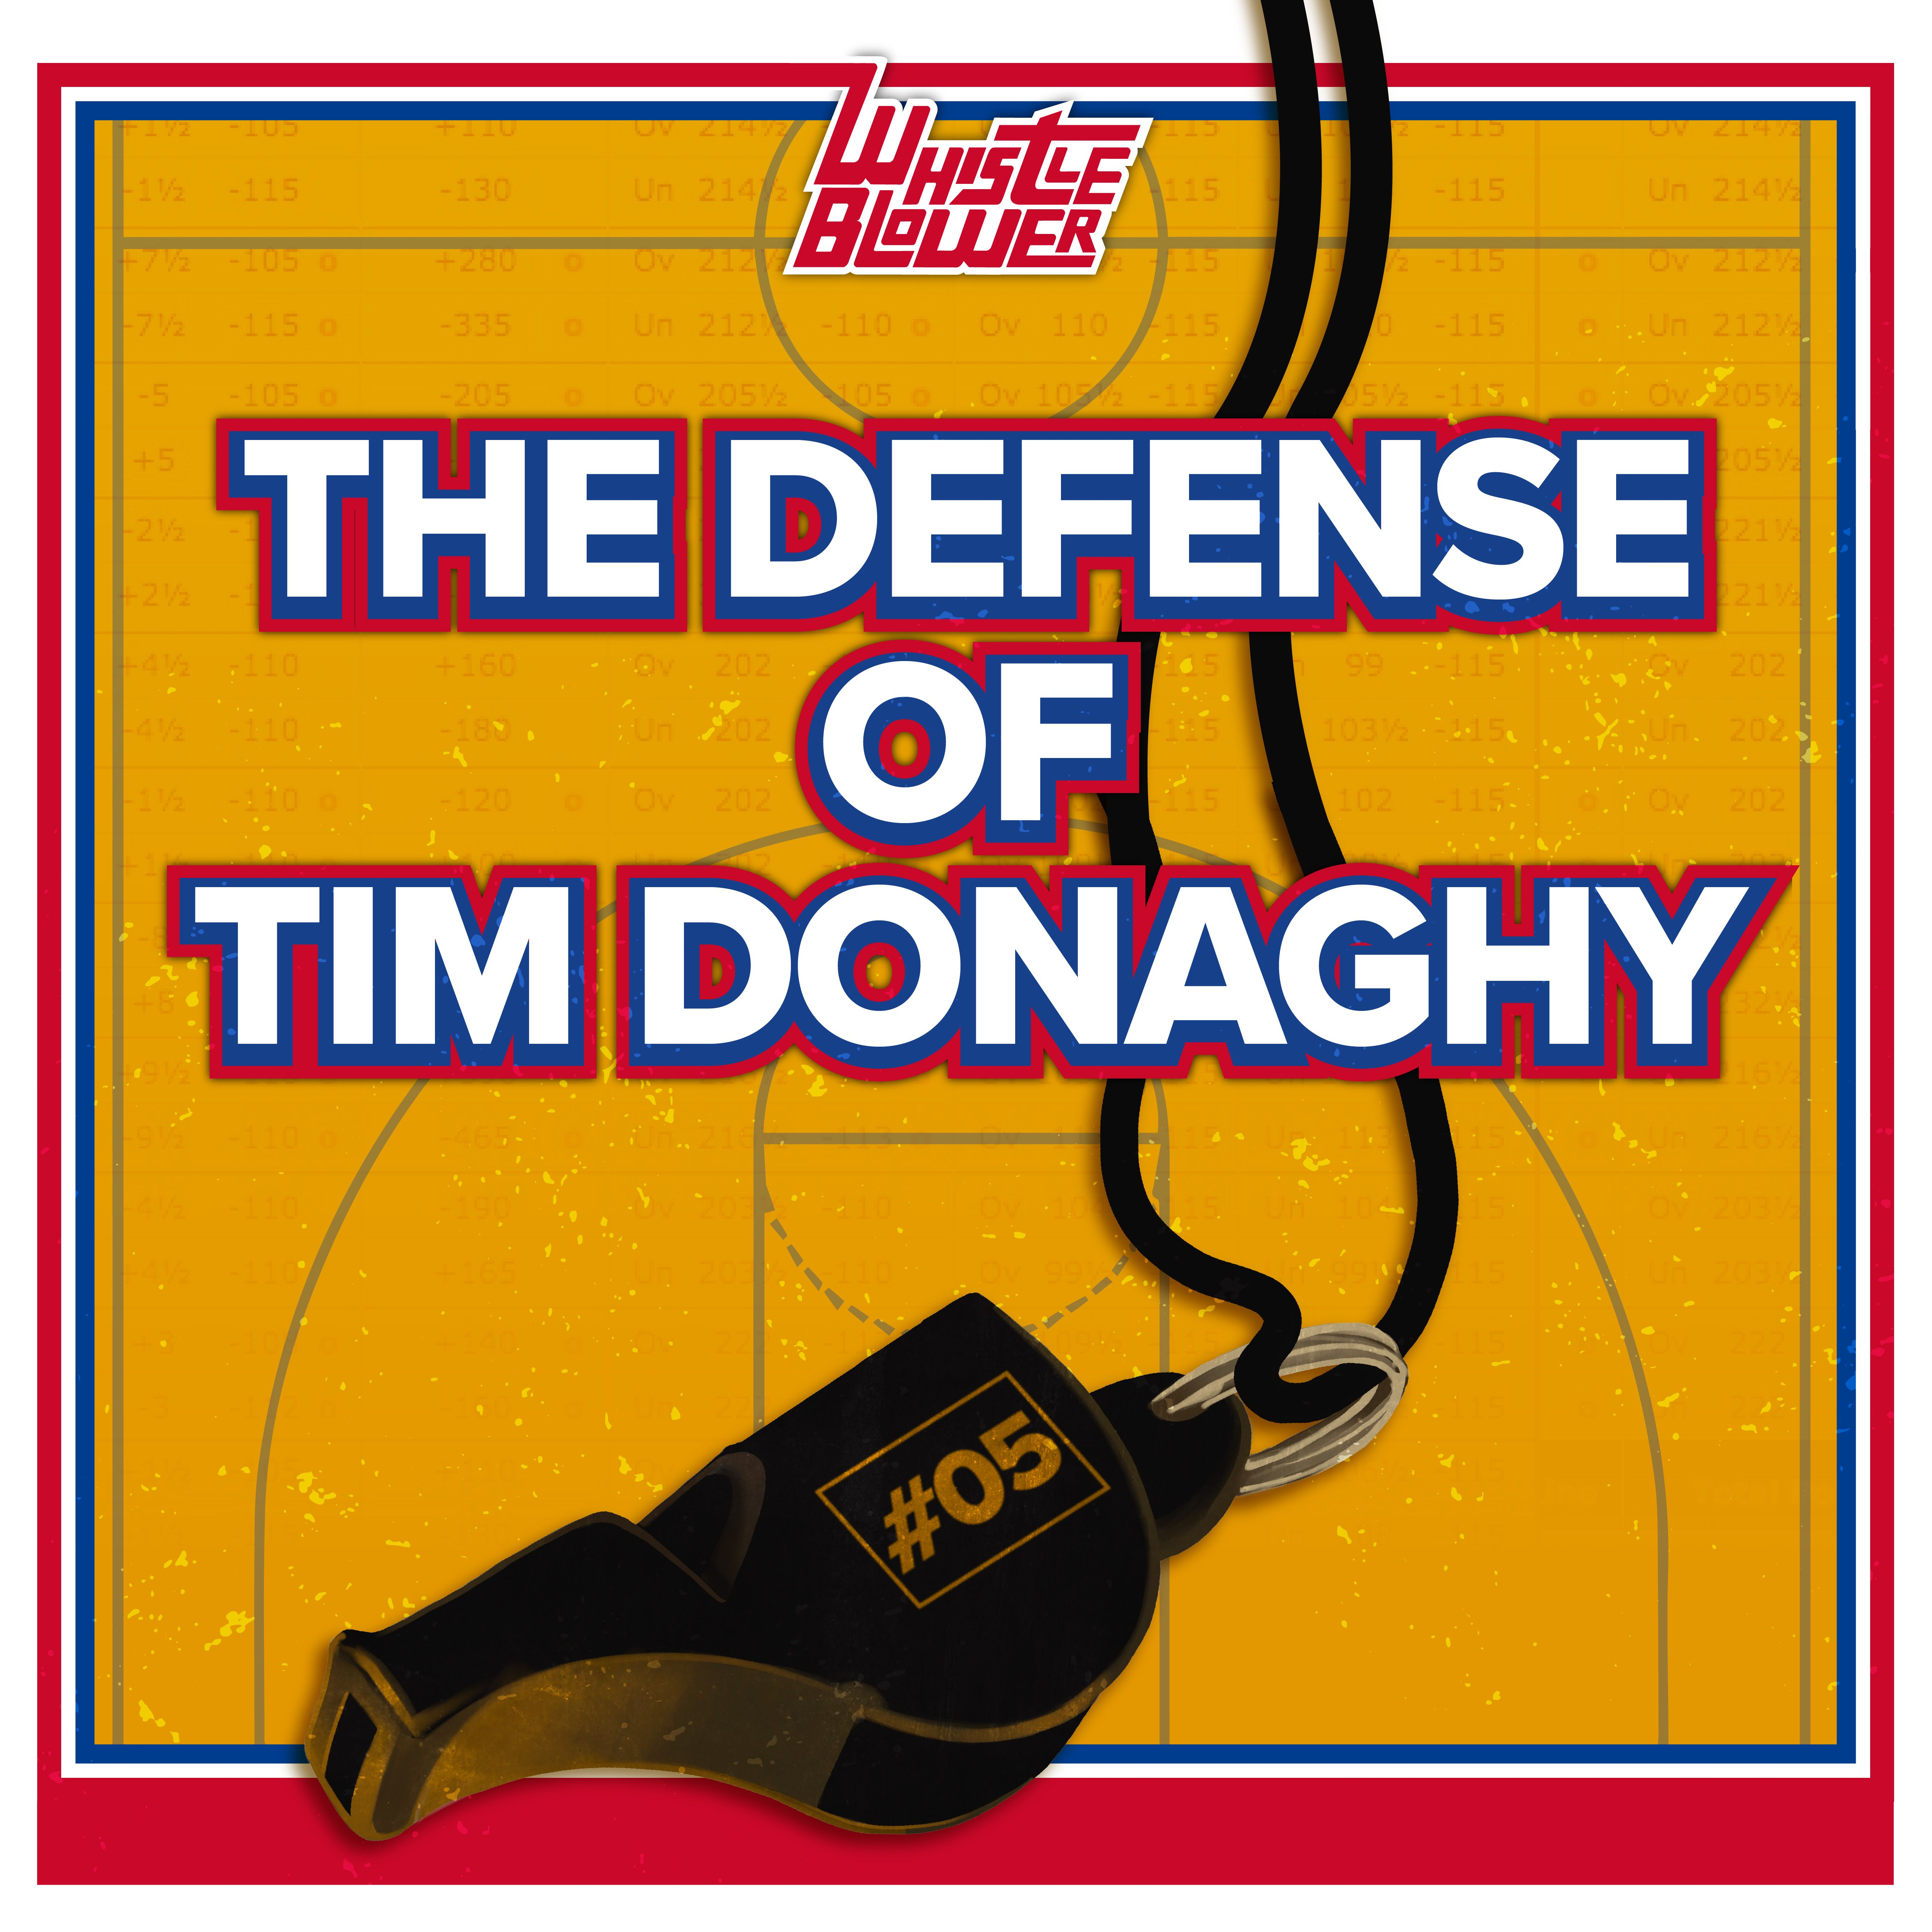 The Defense of Tim Donaghy